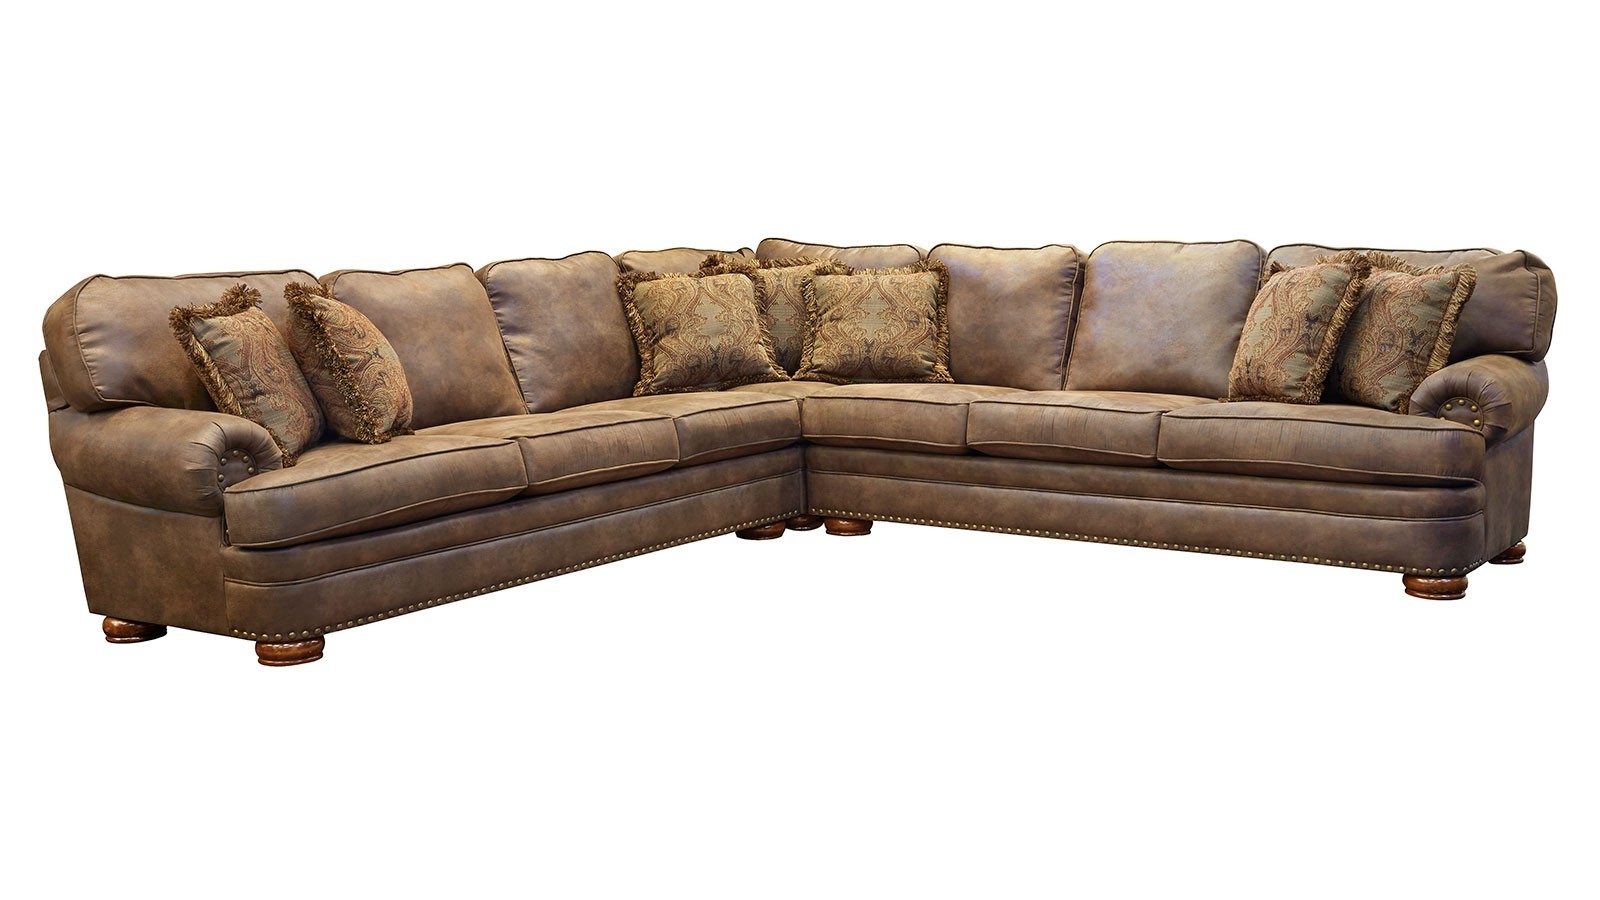 Gallery Furniture Regarding El Paso Texas Sectional Sofas (View 7 of 20)